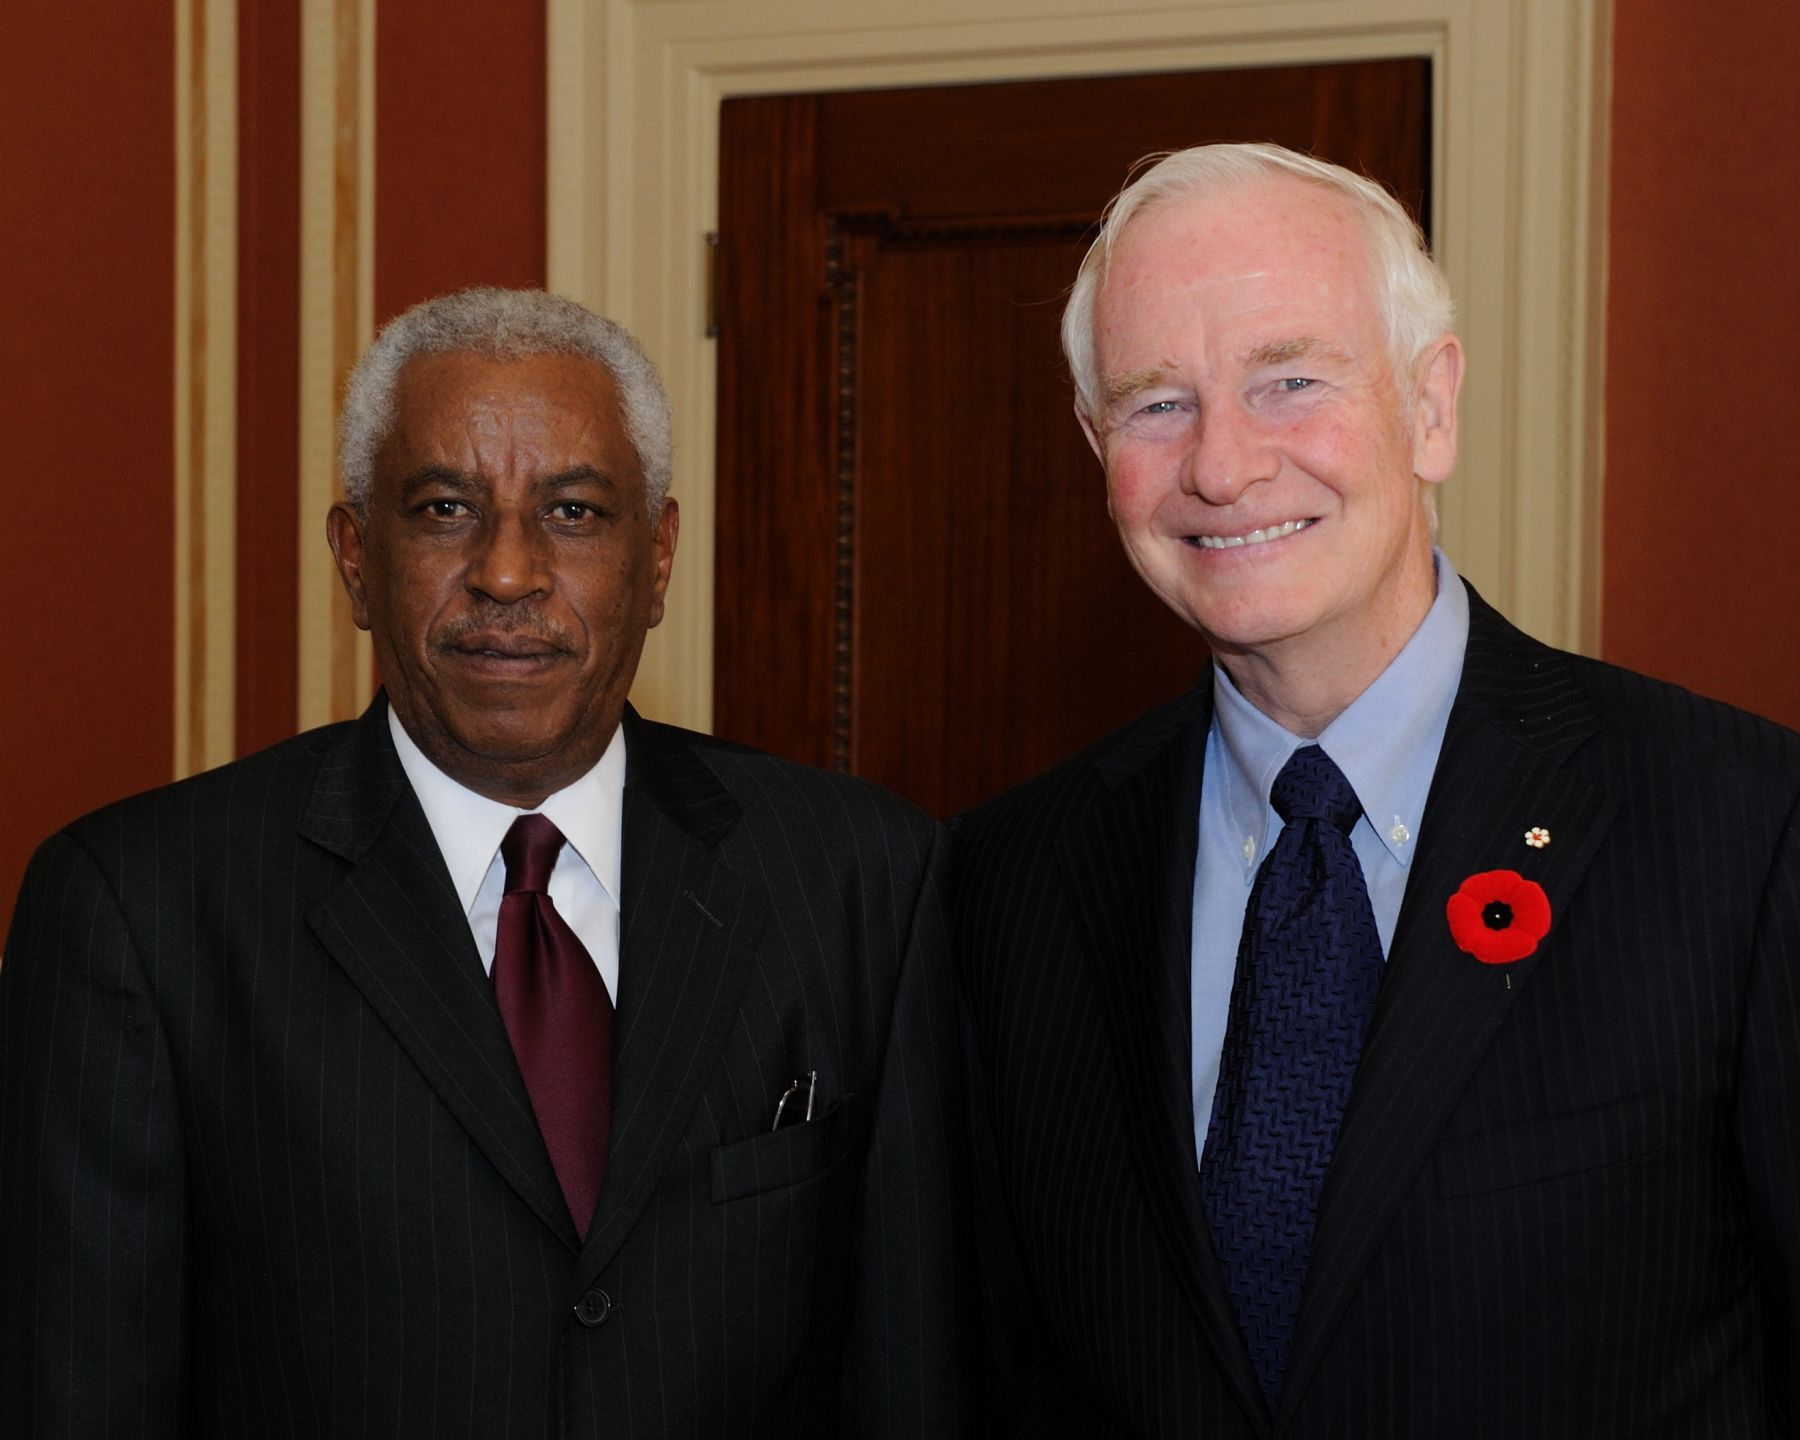 His Excellency the Right Honourable David Johnston, Governor General of Canada, received the credentials of His Excellency Ghirmai Ghebremariam, Ambassador of the State of Eritrea.